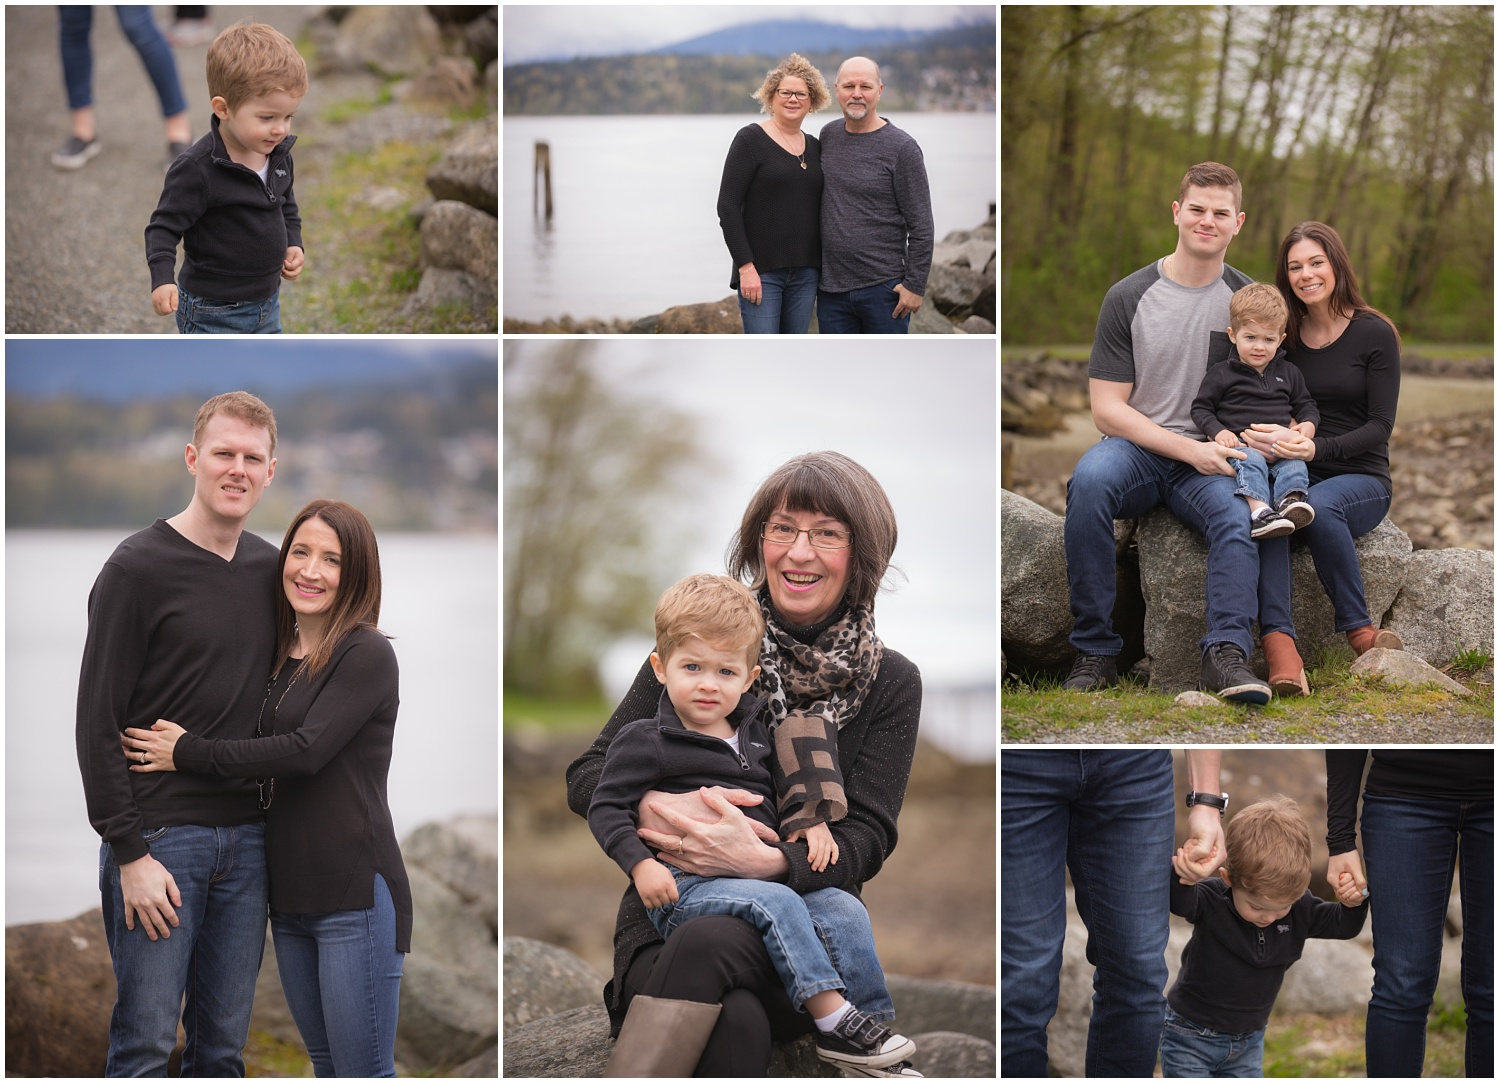 Amazing Day Photography - Barnet Marie Park Family Session - Burnaby Family Session - Burnaby Family Photographer (5).jpg